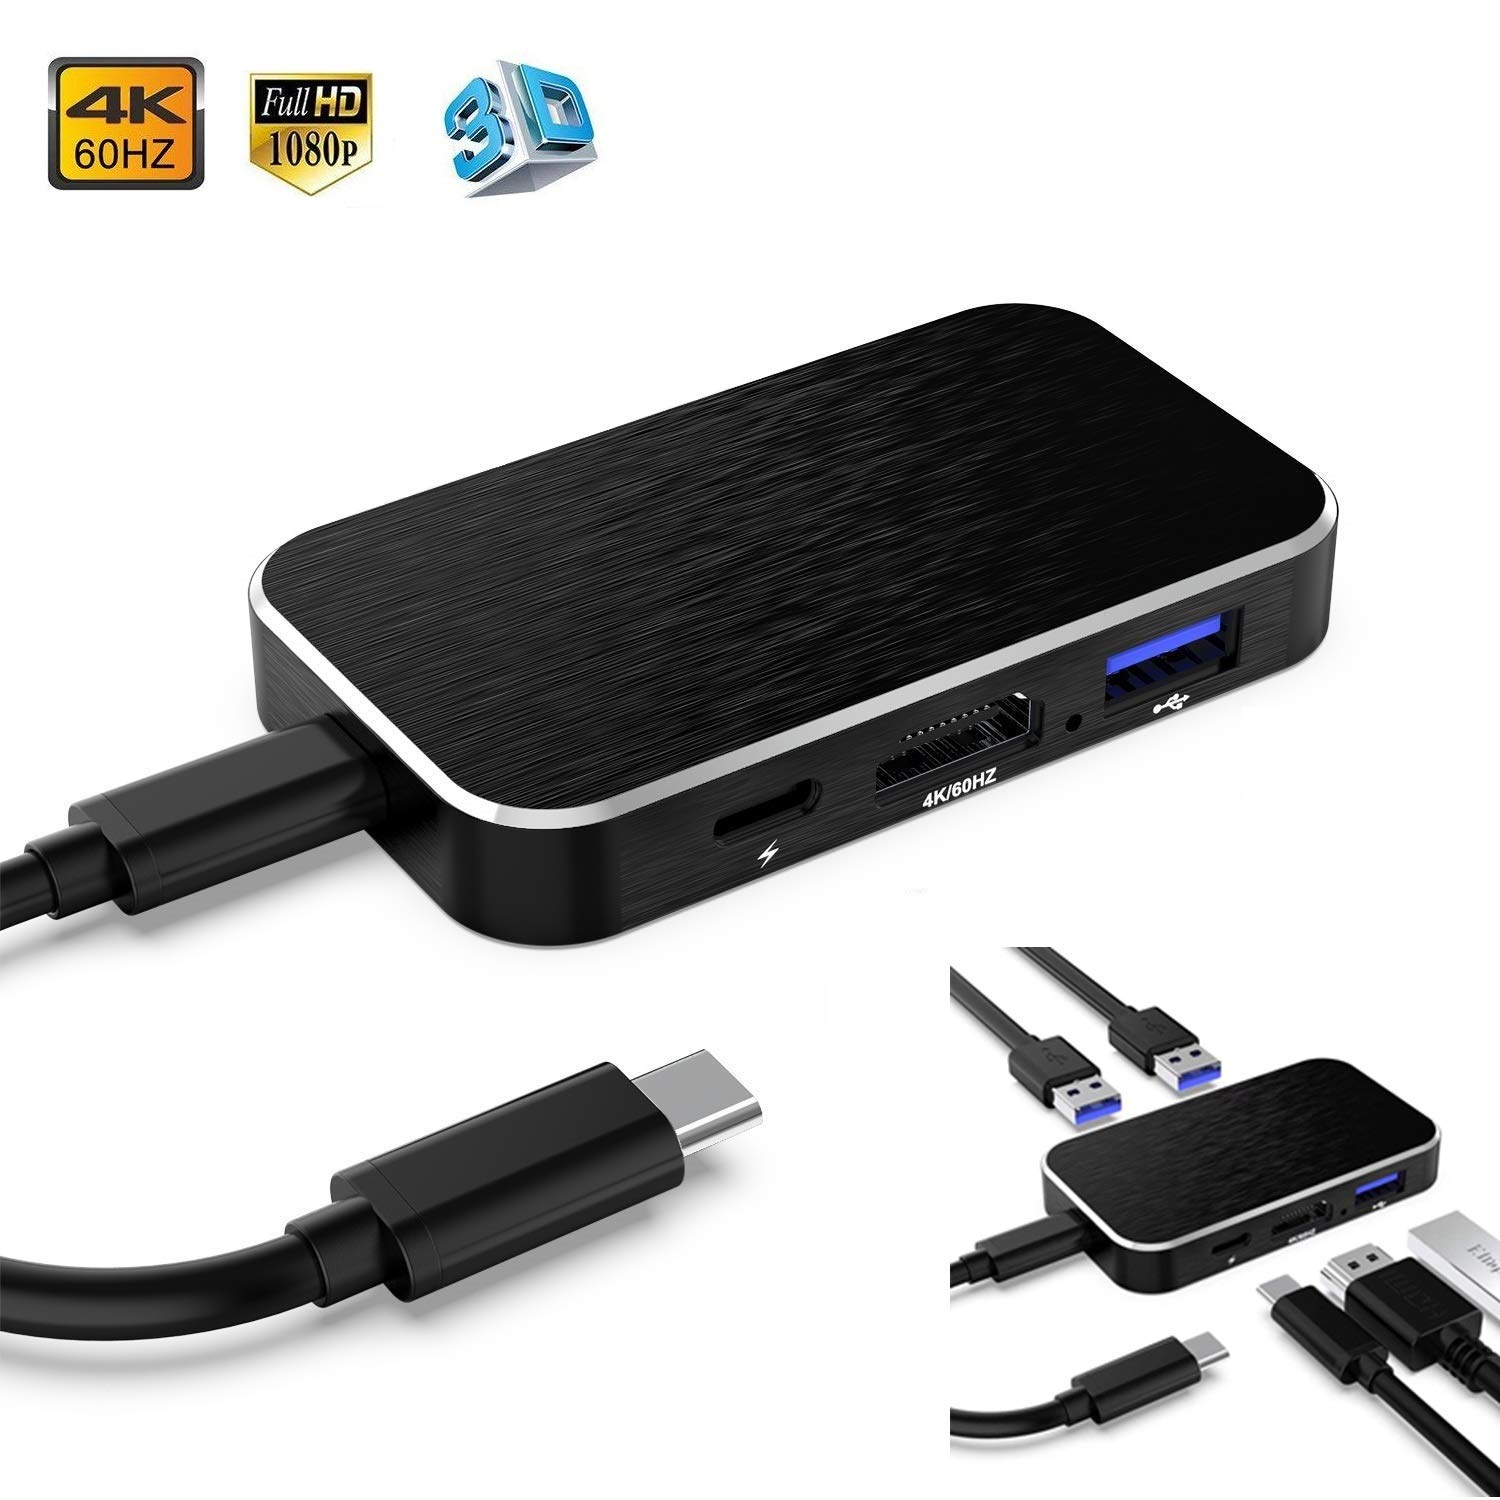 USB C Hub, 5-in-1 Type C Hub, USB C3.0 to HDMI 4K@60Hz,100w USB-C Power Delivery, Portable for MacBook Pro, Nintendo Switch and Other Type C Laptops and Phones